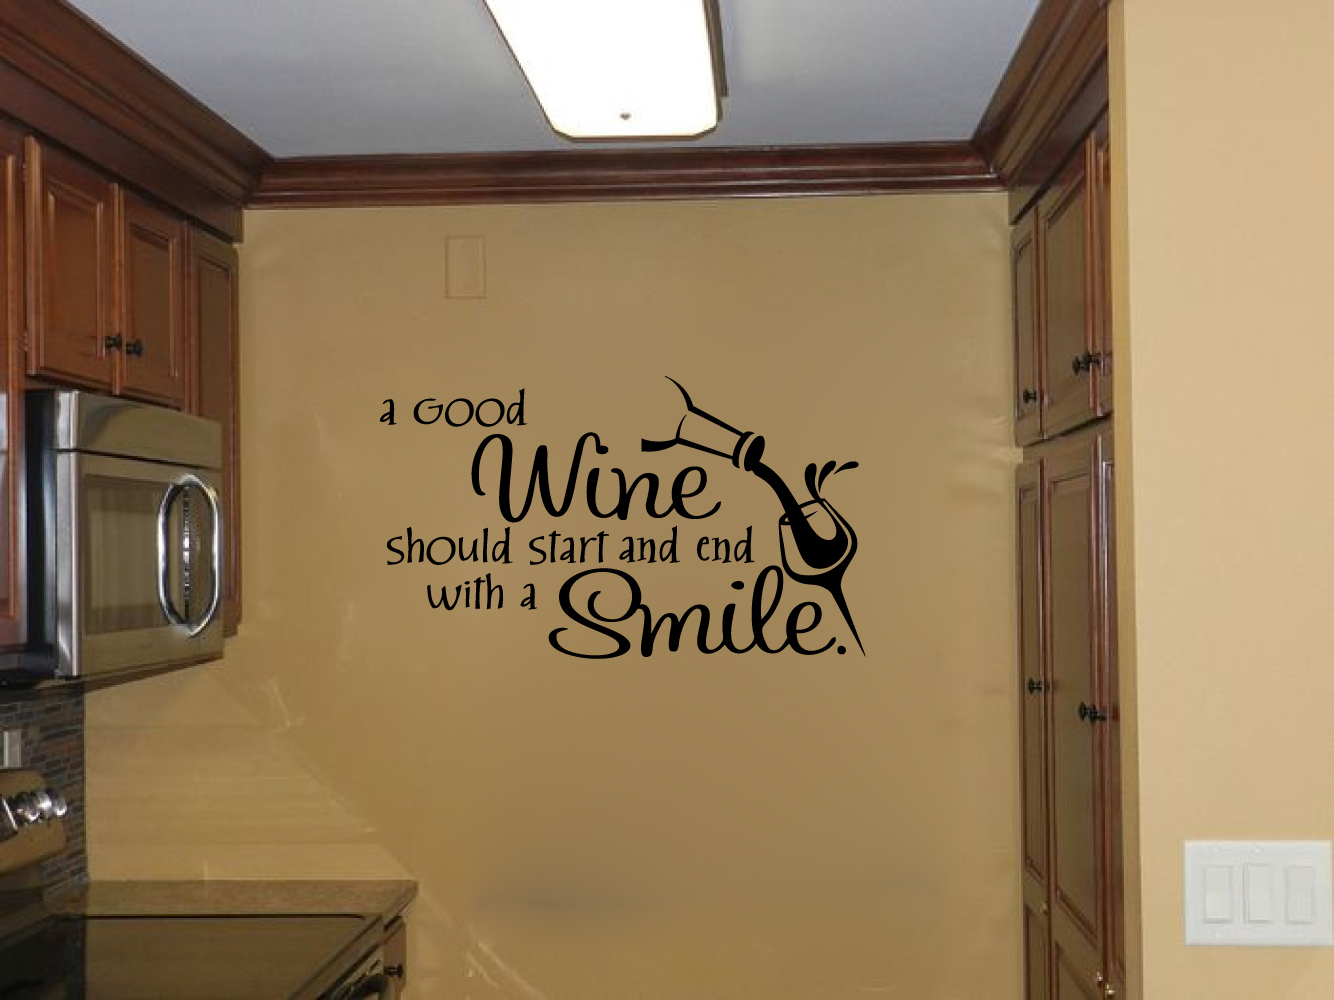 A Good Wine Should Start and End With A Smile Vinyl Wall Words Decal Sticker Graphic